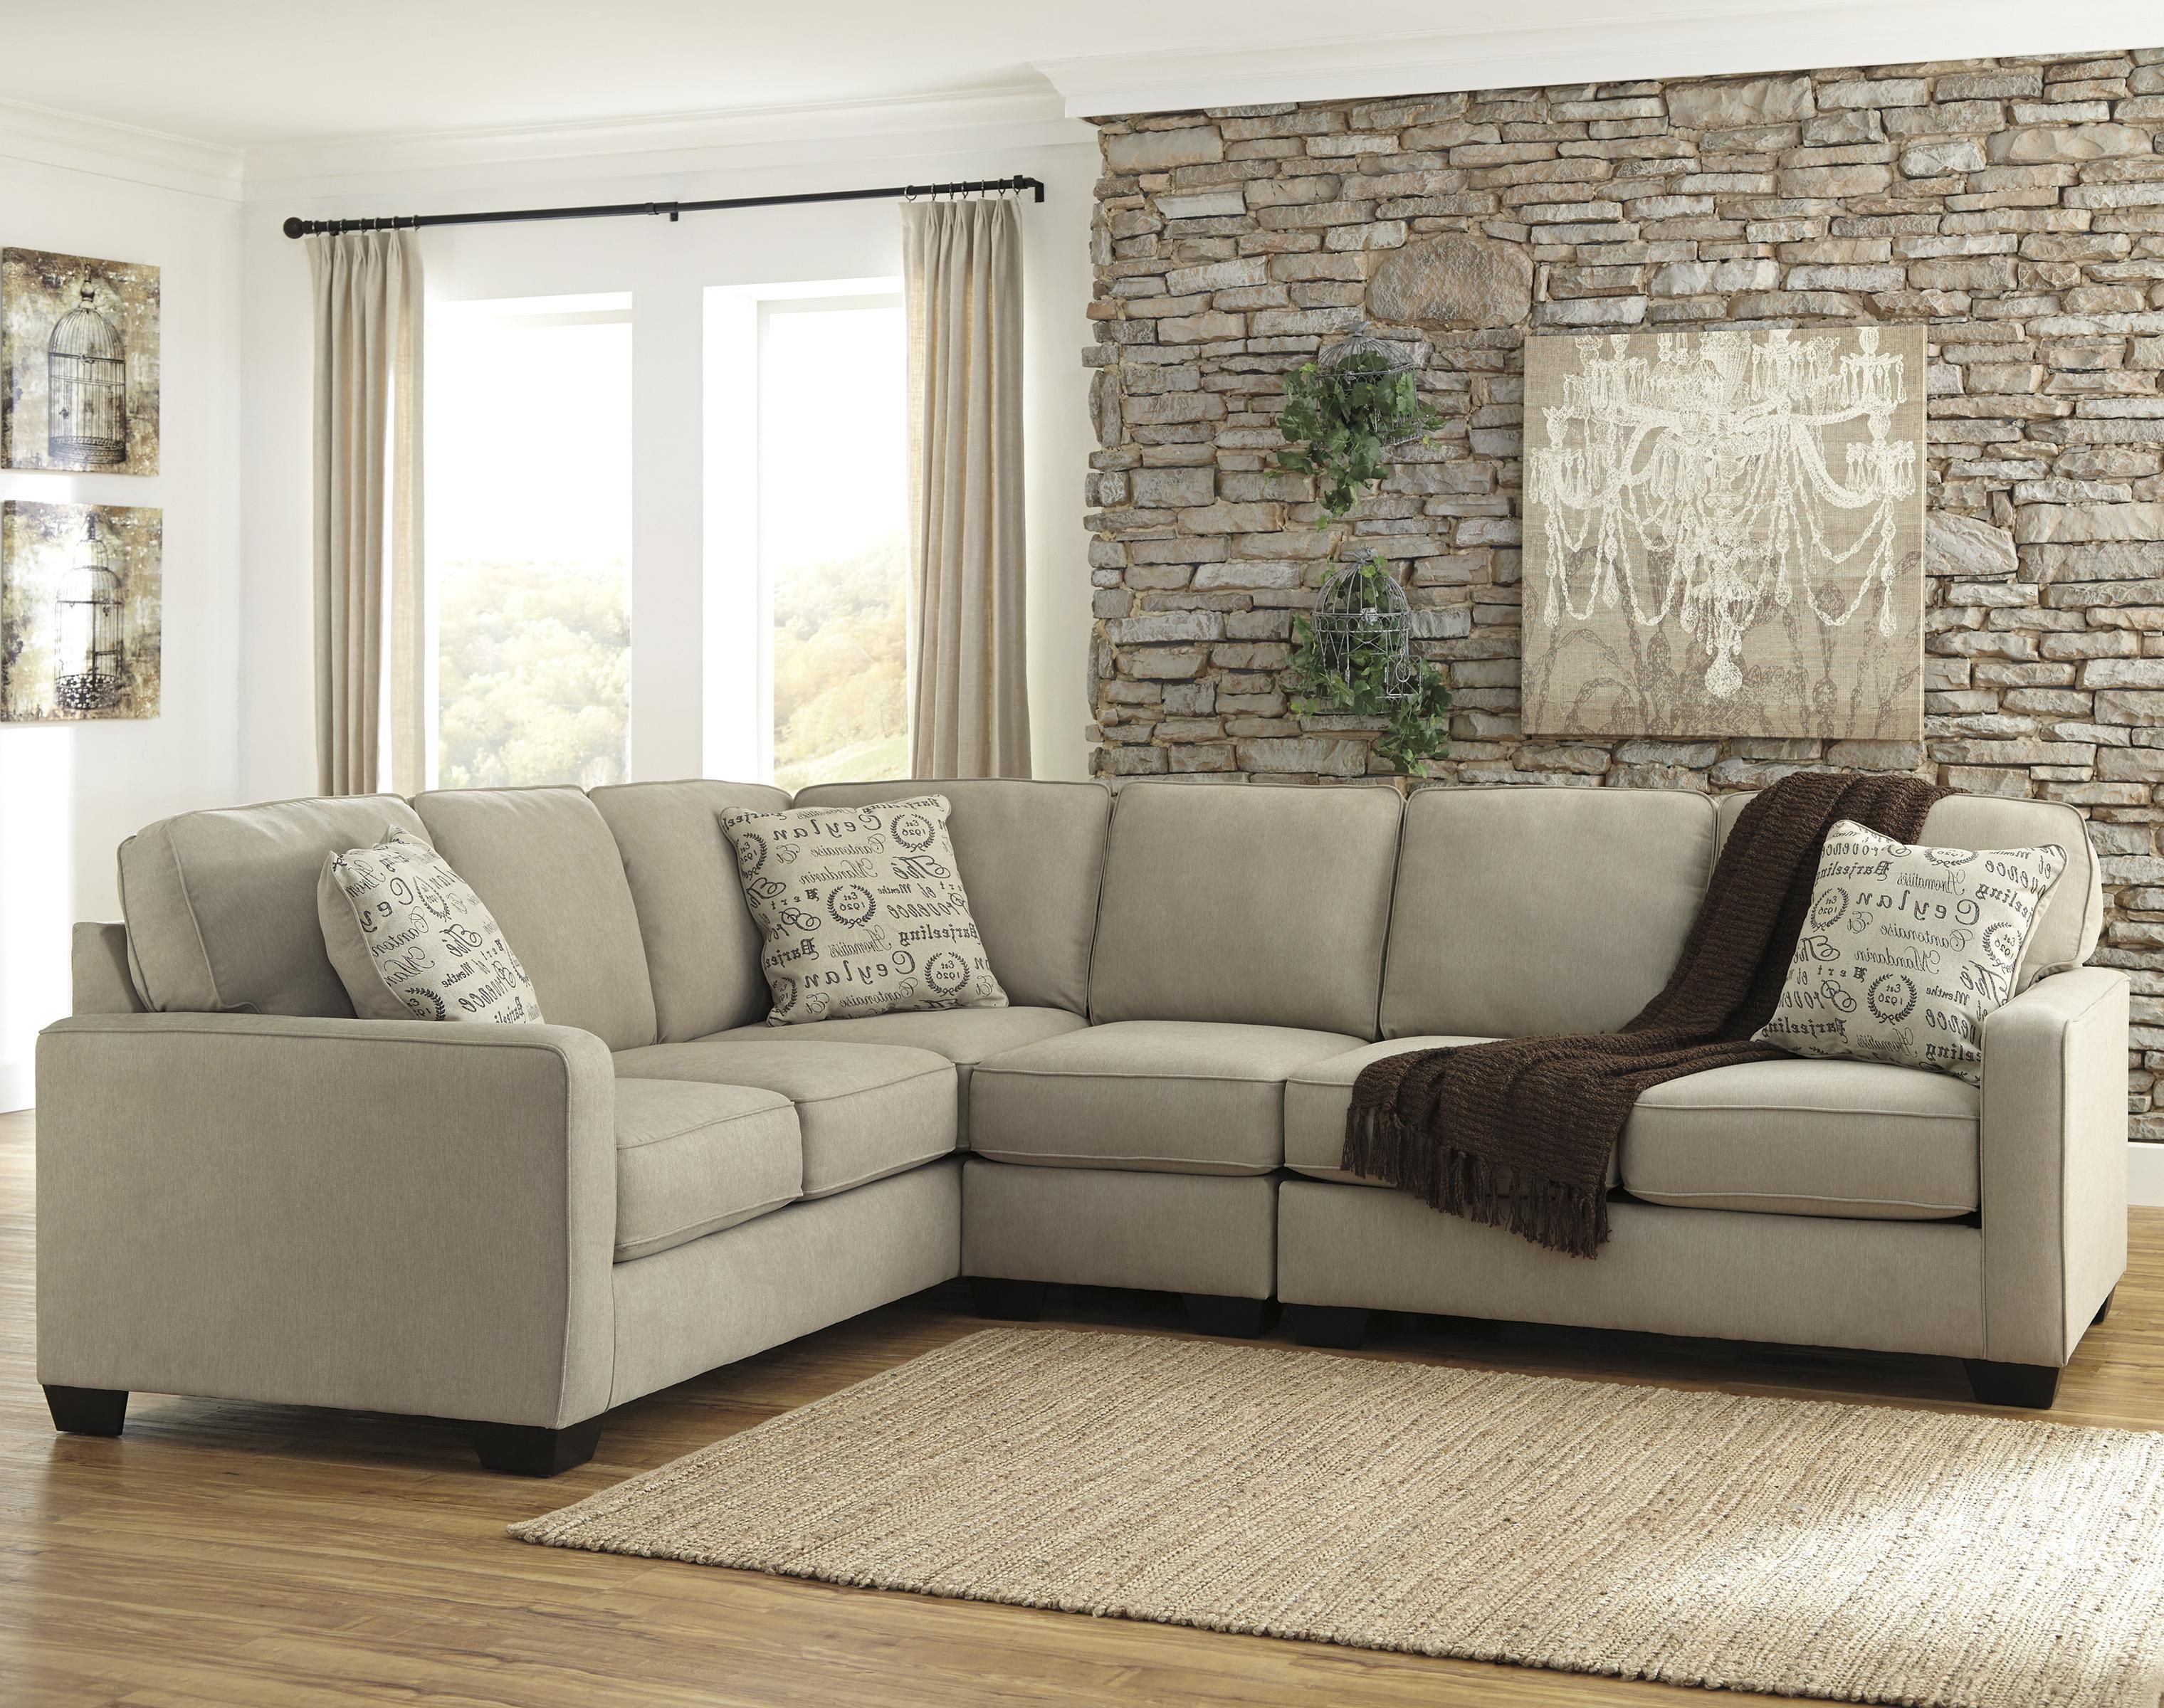 Best Alenya Quartz 3 Piece Sectional With Right Loveseat By 640 x 480